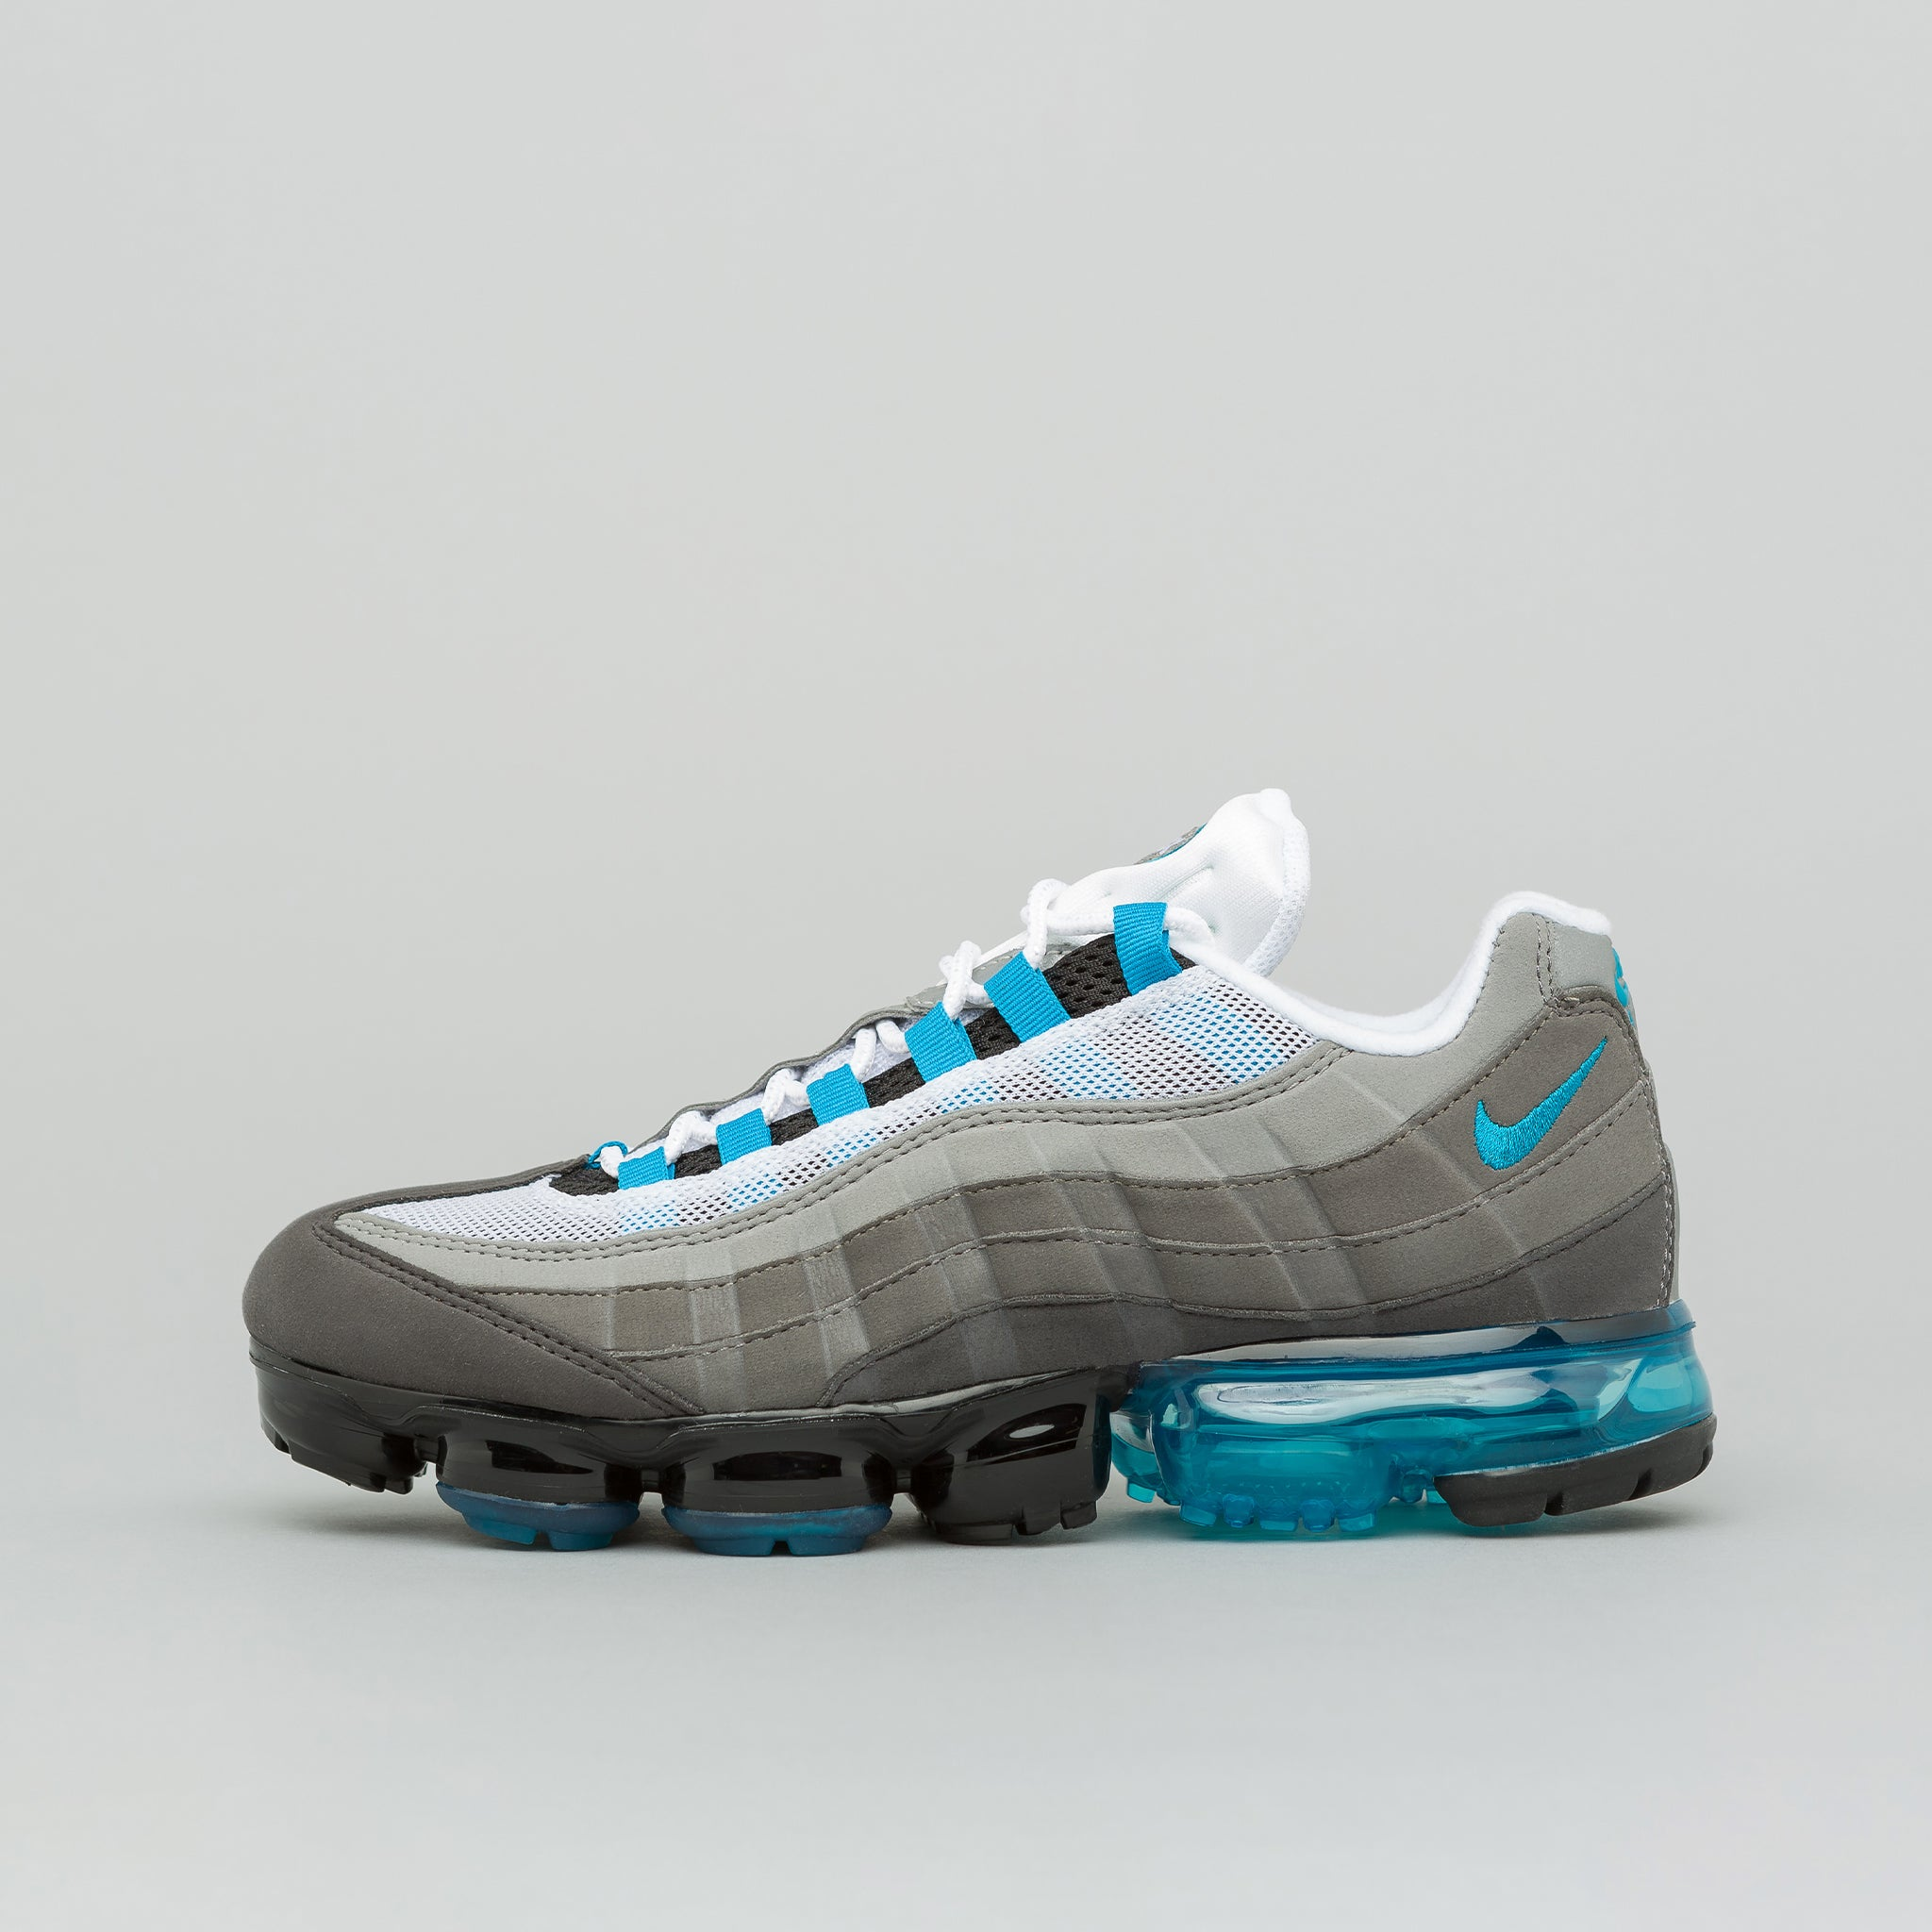 Air Vapormax 95 in Black/Neo Turqoise